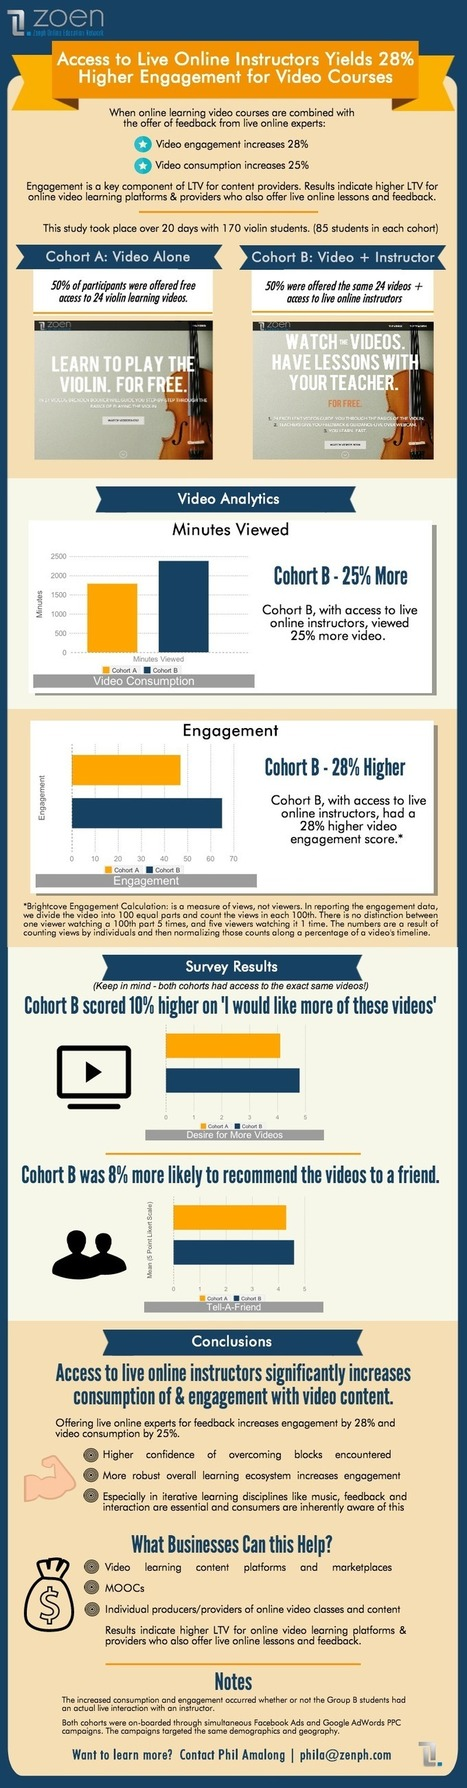 Video + Teach Beats Video Alone In Online Learning [Infographic] via  @RKirkOwen | Curation Revolution | Scoop.it